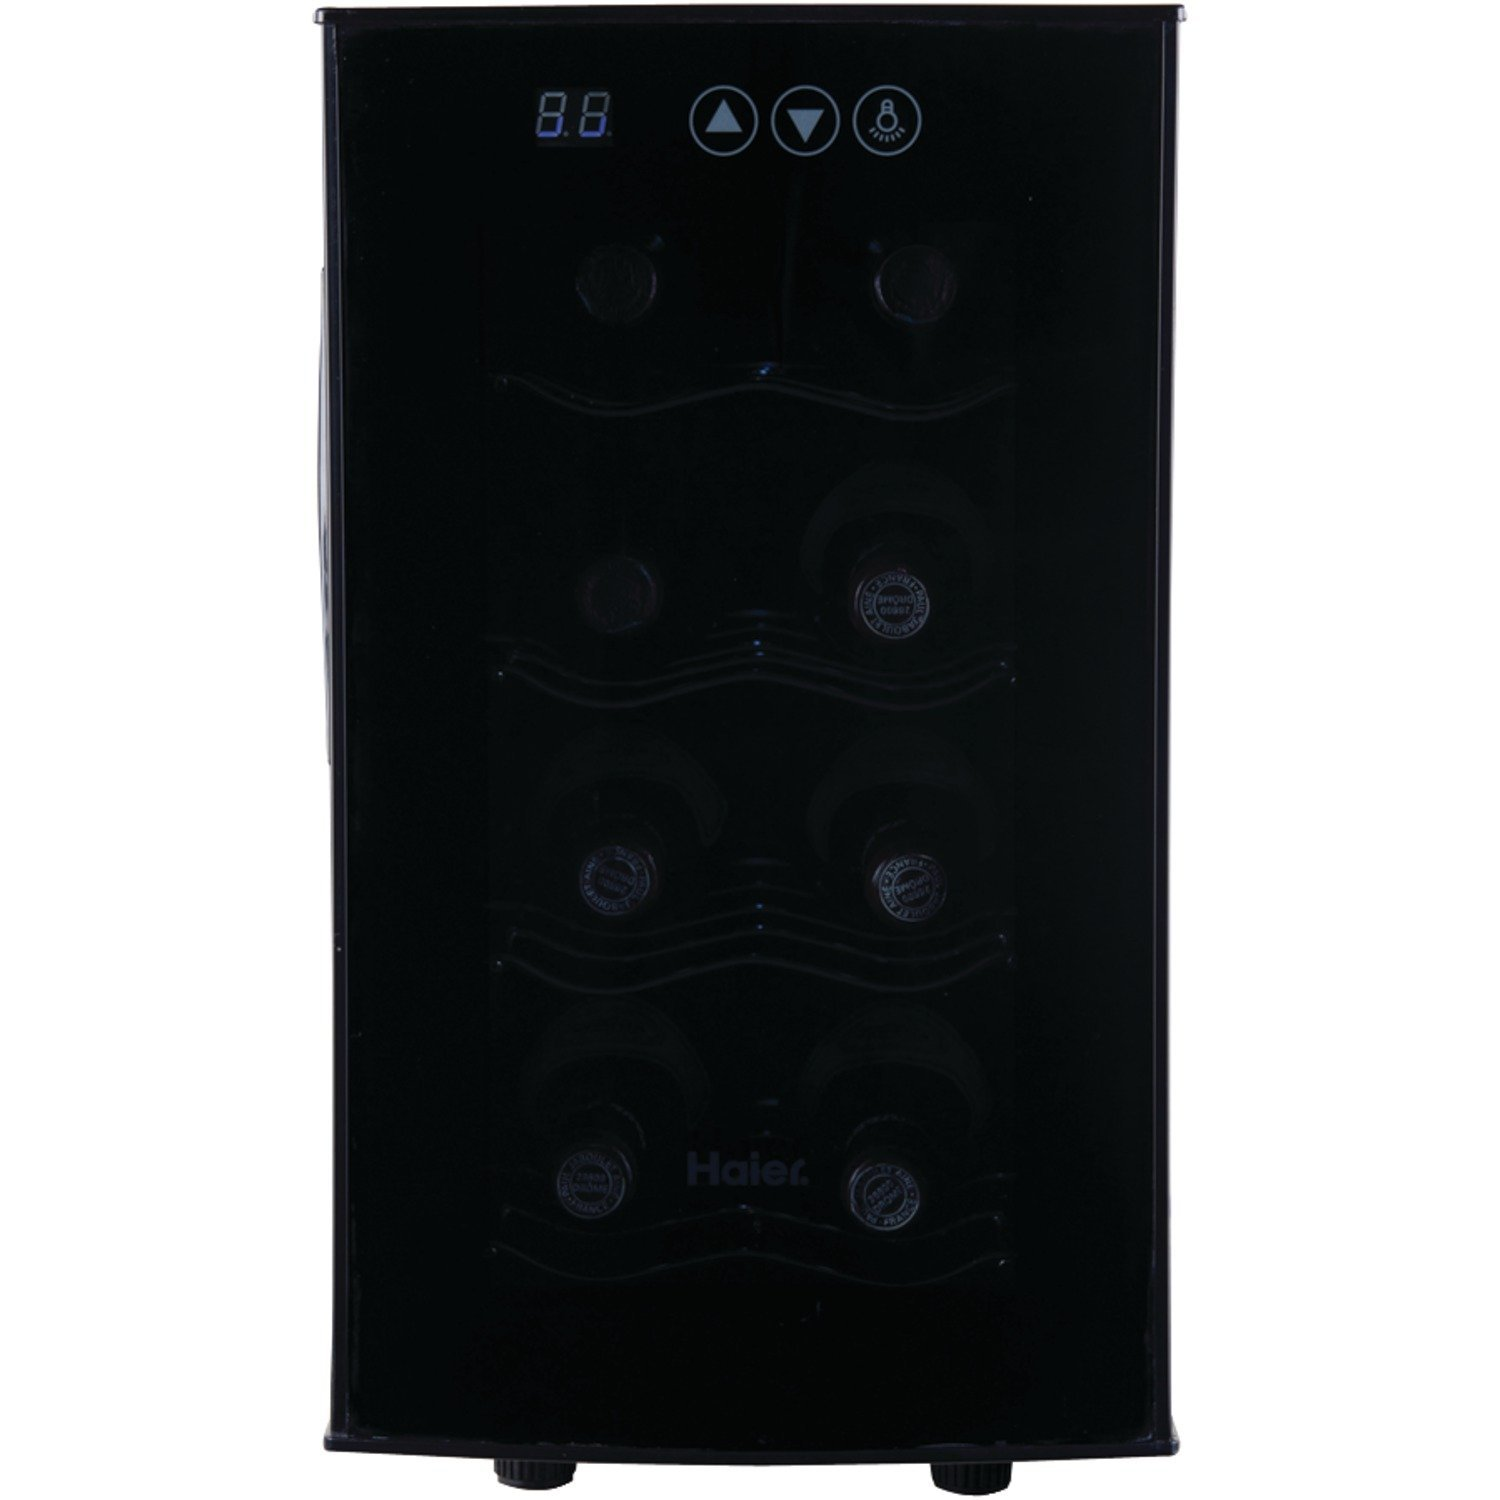 Haier 8 bottle wine cooler decor ideasdecor ideas for Decor wine cooler